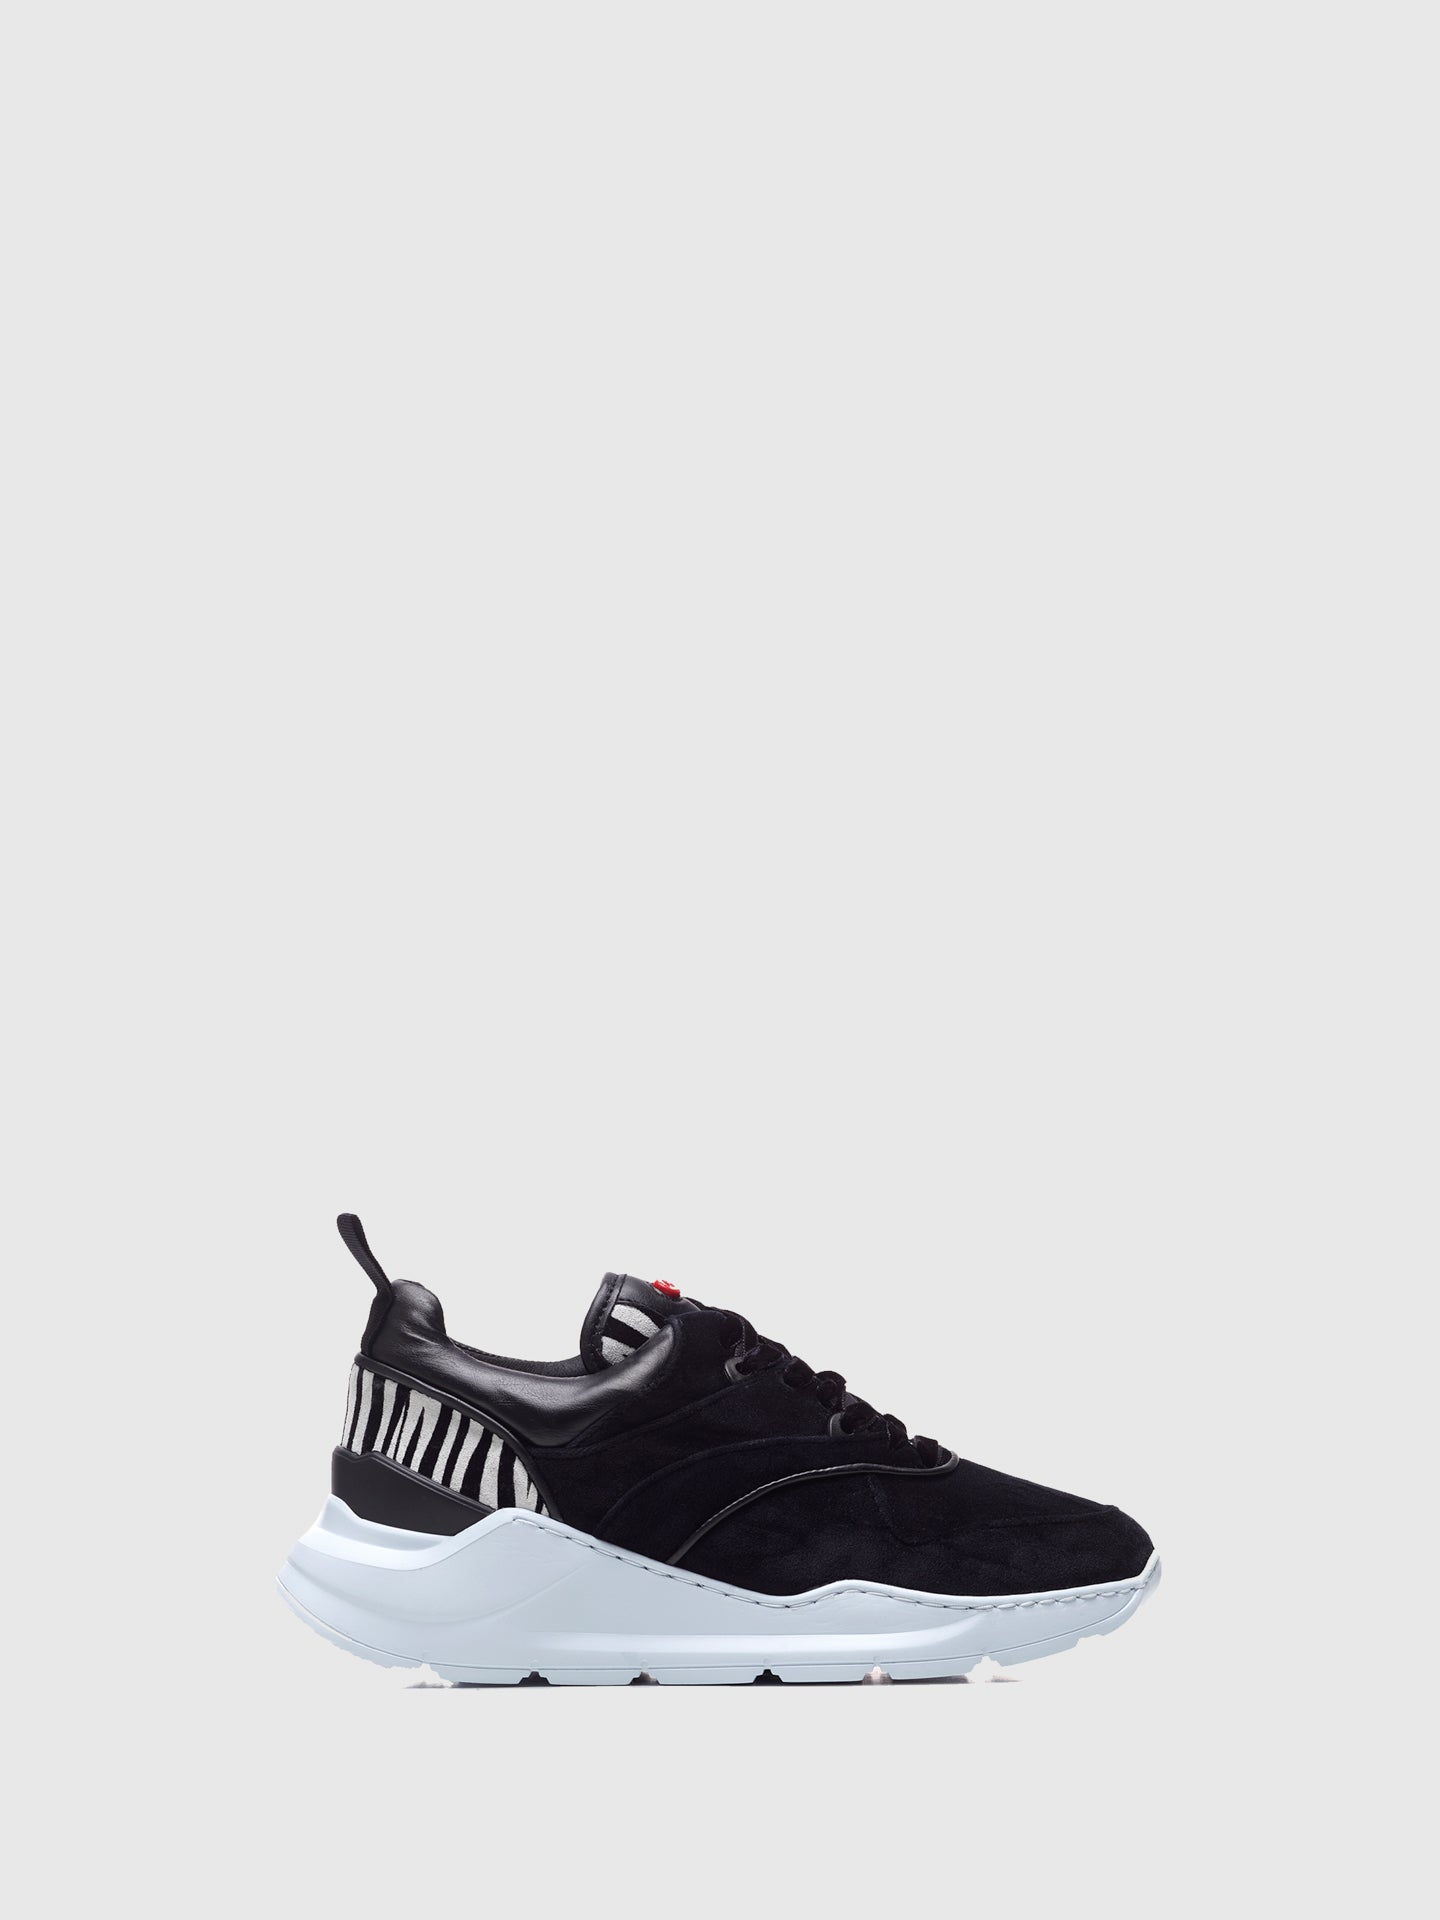 Nobrand Black White Lace-up Trainers